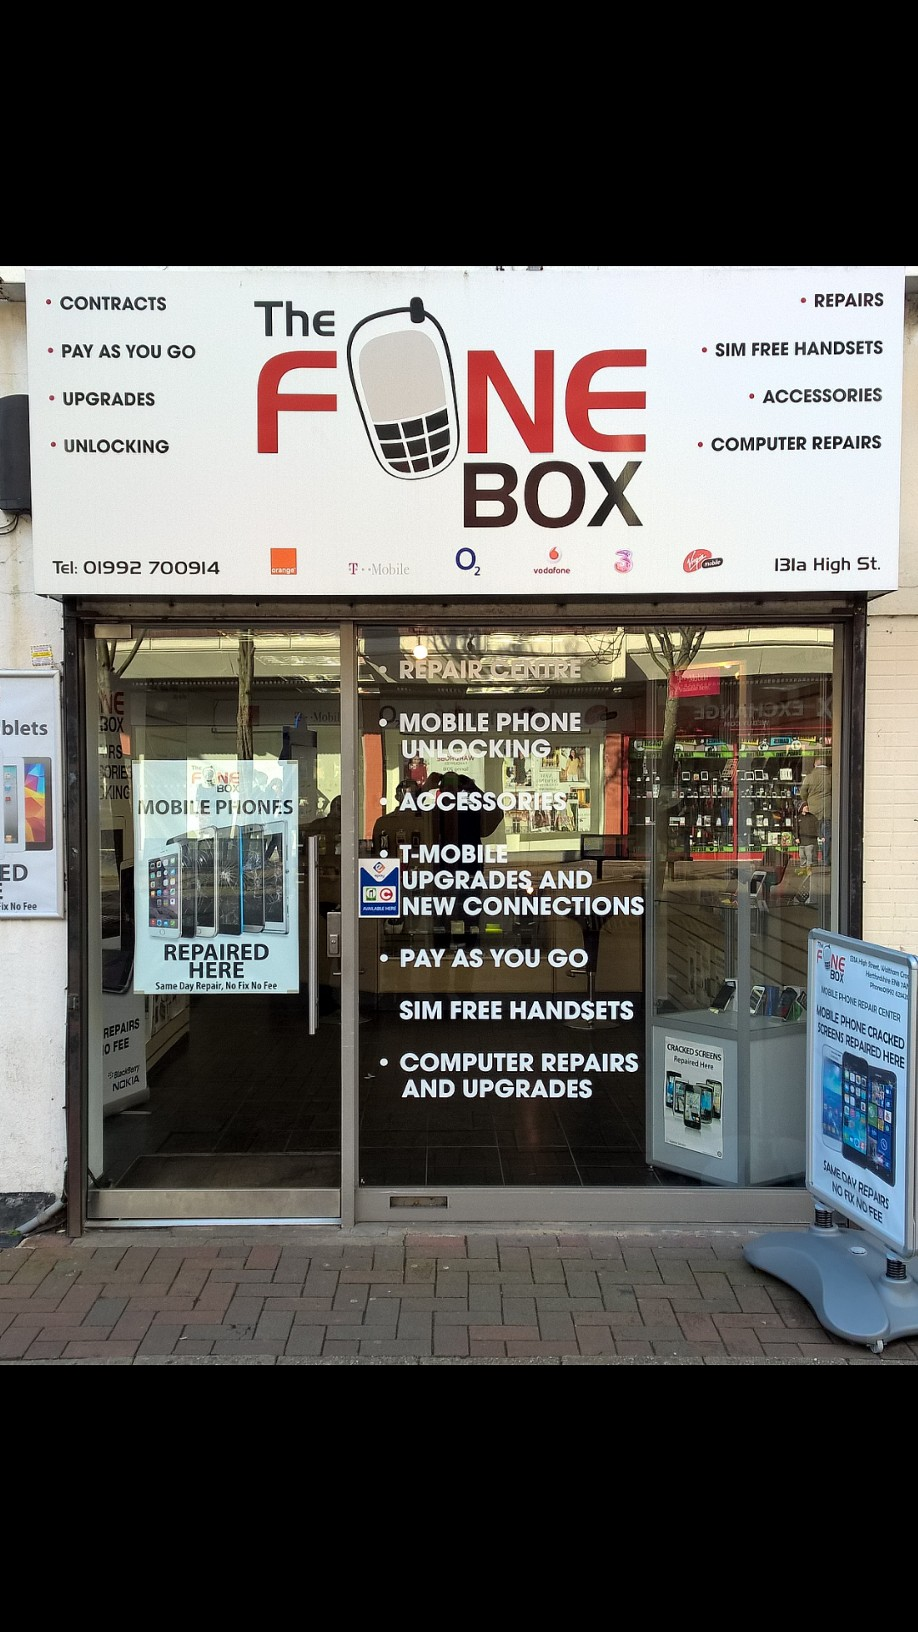 the fone box